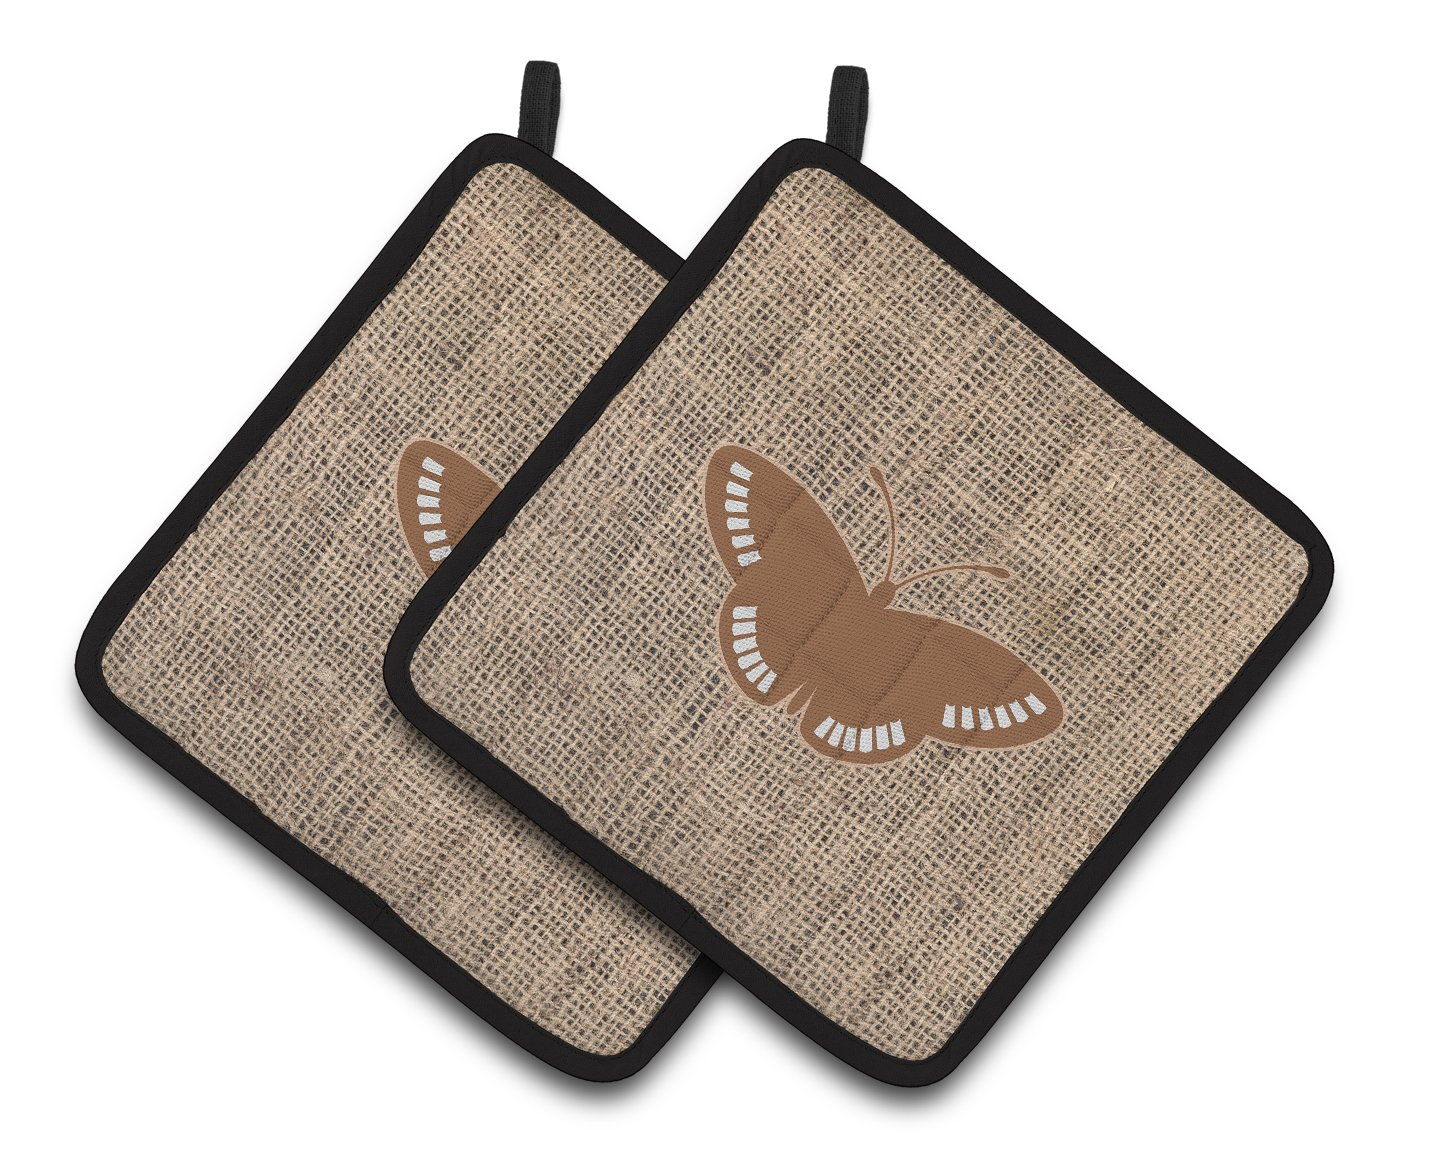 Carolines Treasures Butterfly Faux Burlap /& Brown Pair of Pot Holders BB1031-BL-BN-PTHD Multicolor 7.5HX7.5W